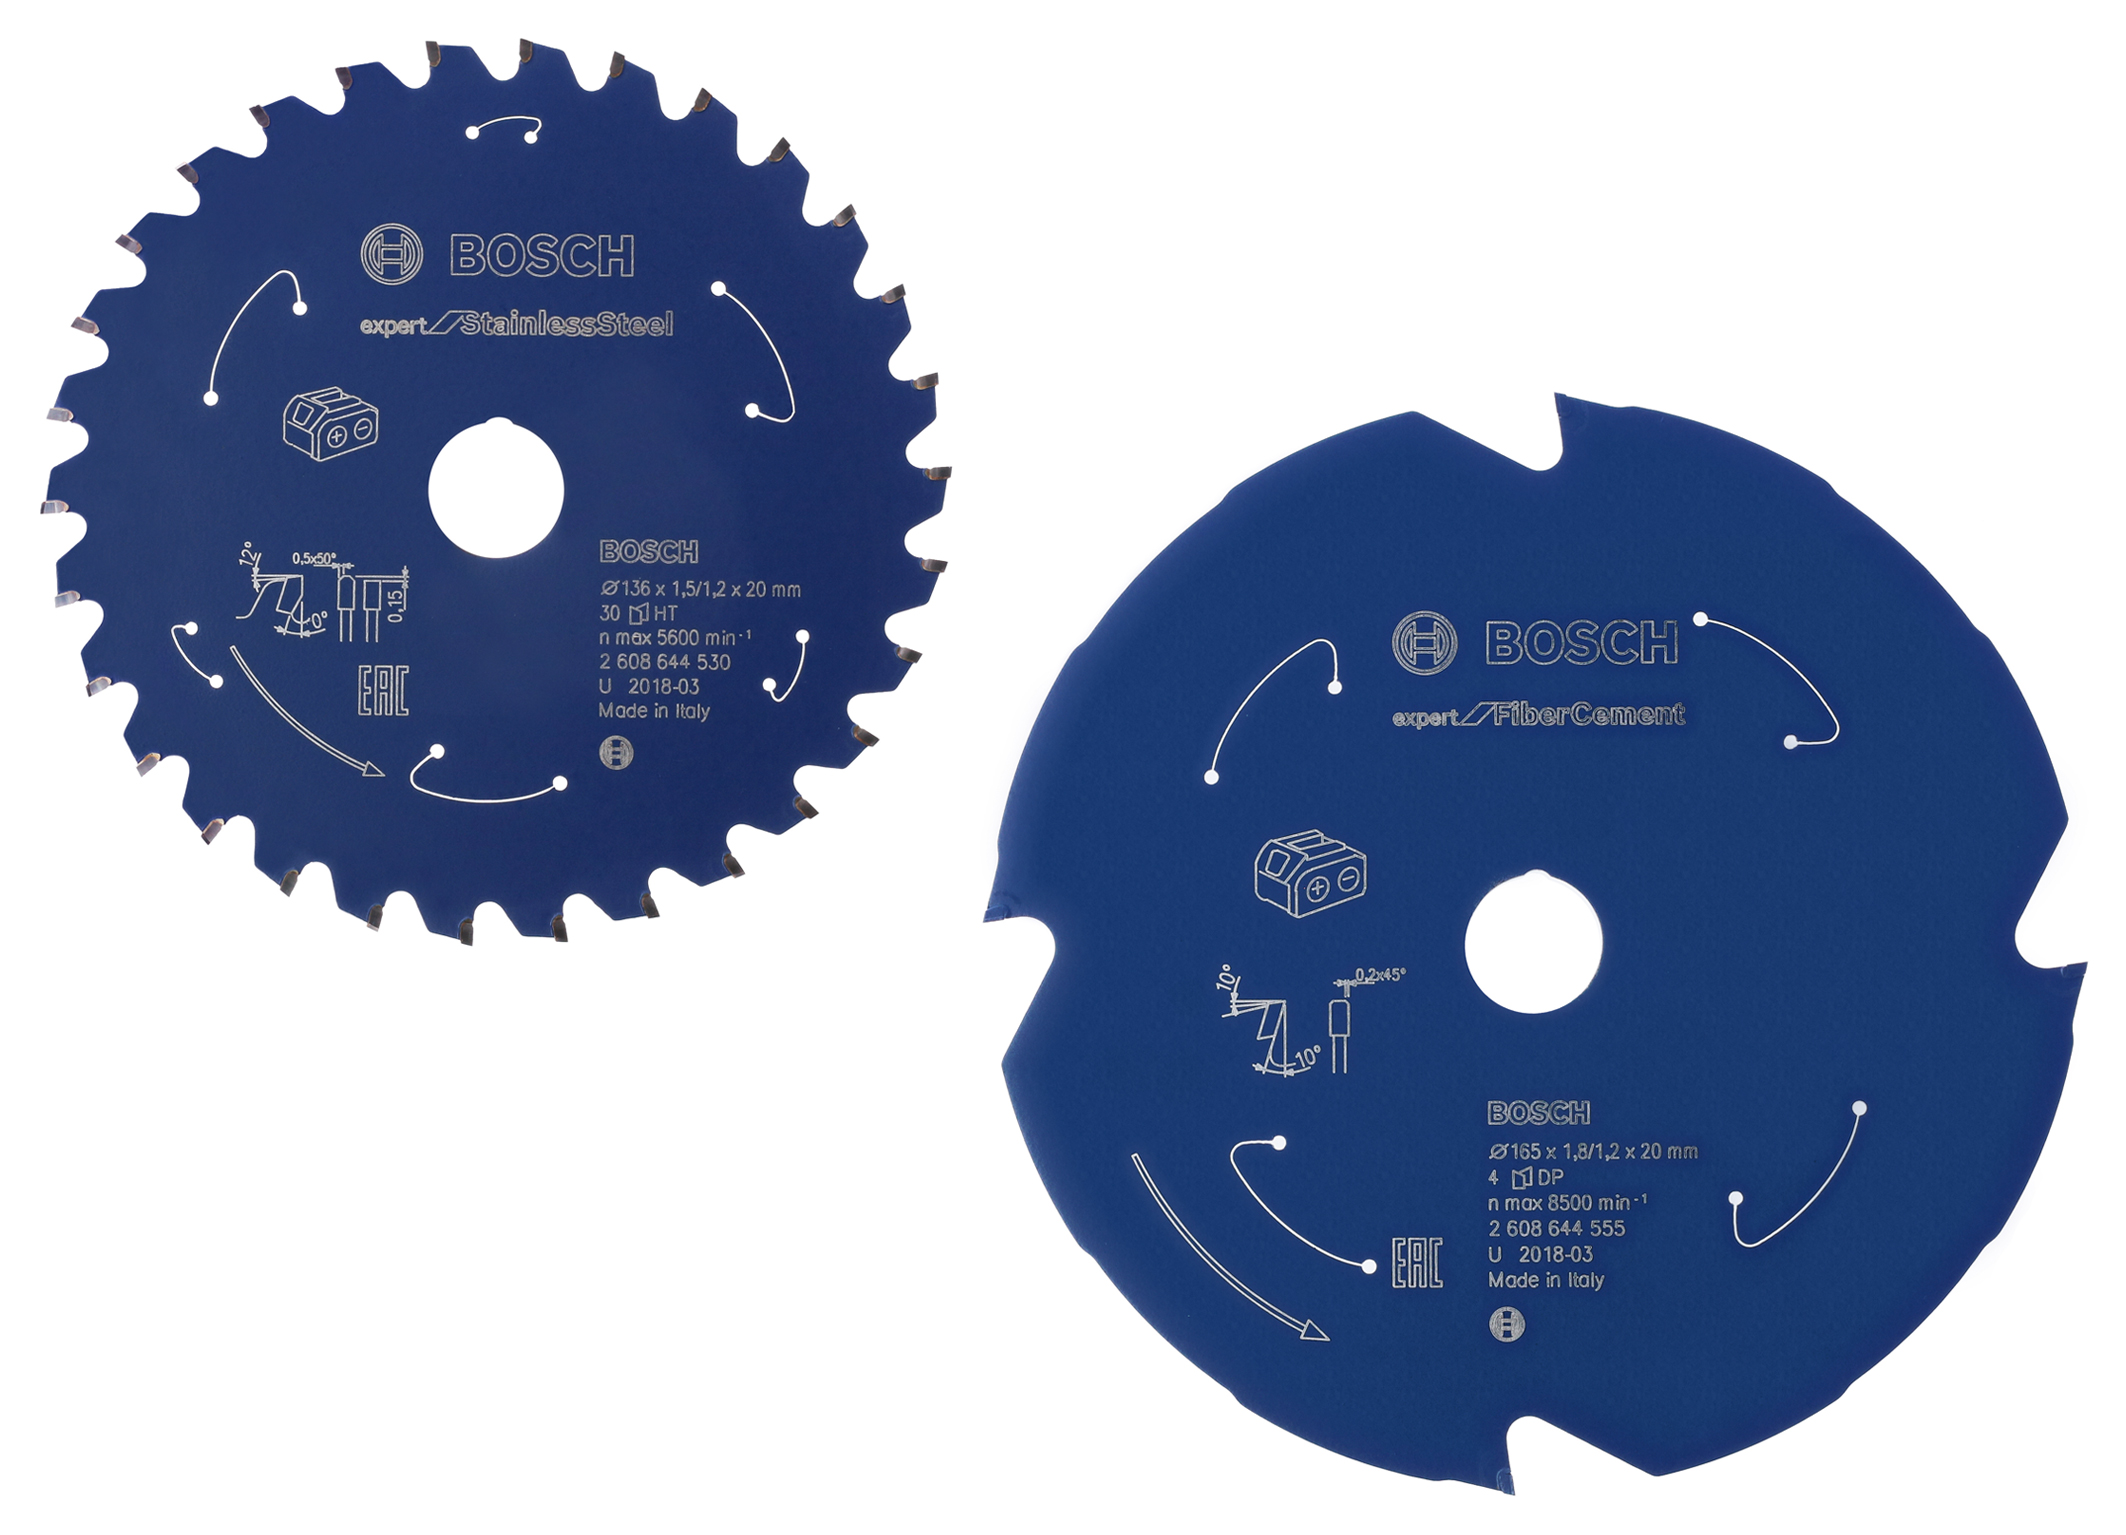 "Continuous high cutting quality, maximum runtime for cordless saws: ""Expert for Stainless Steel"" and ""Expert for Fiber Cement"" circular saw blades"